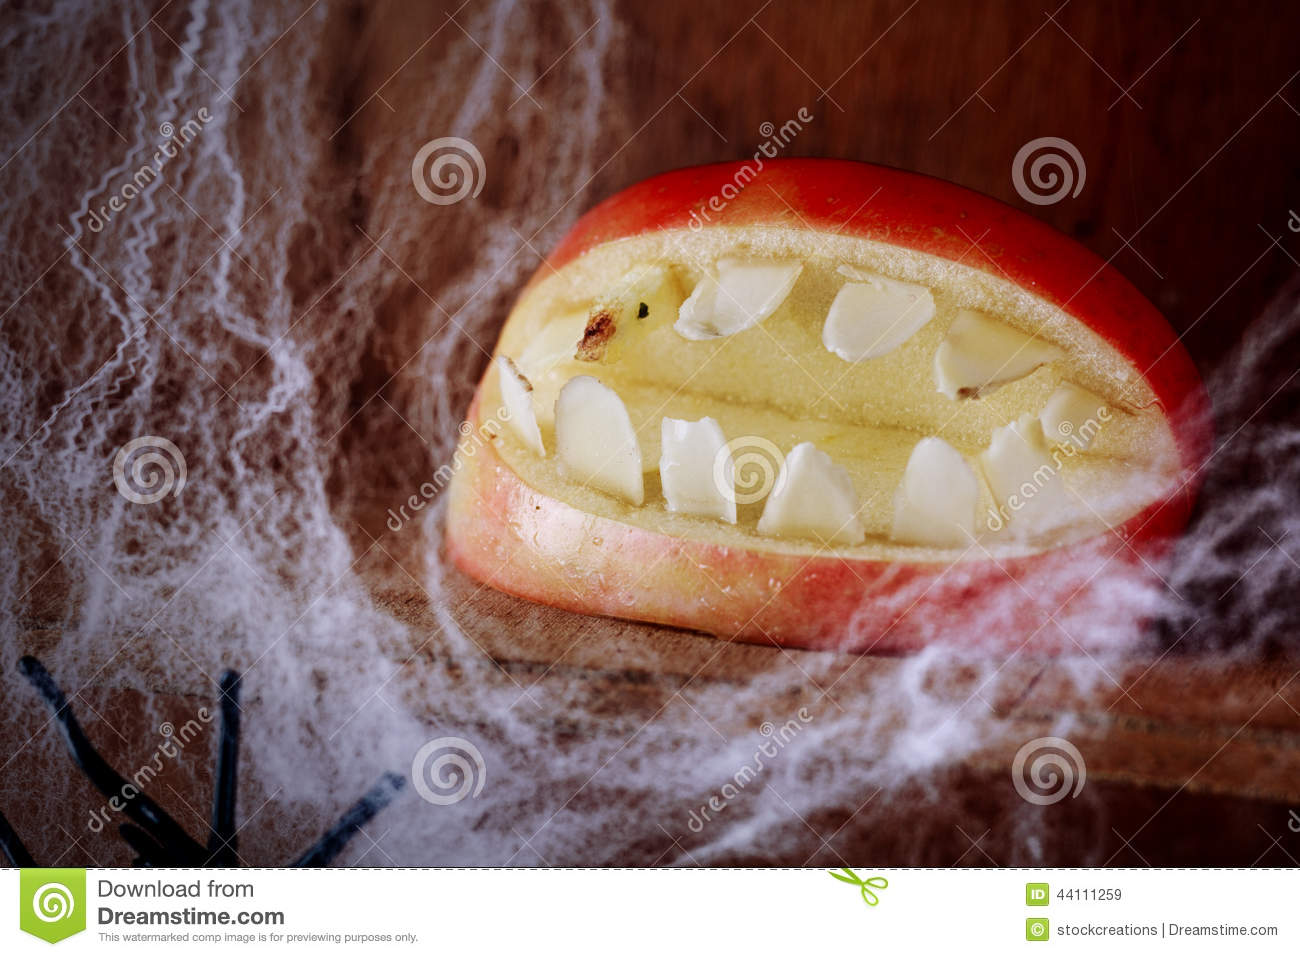 ghoulish gaping halloween mouth with teeth made from an apple on a wooden shelf festooned with spider webs in a scary festive background for allhallows eve